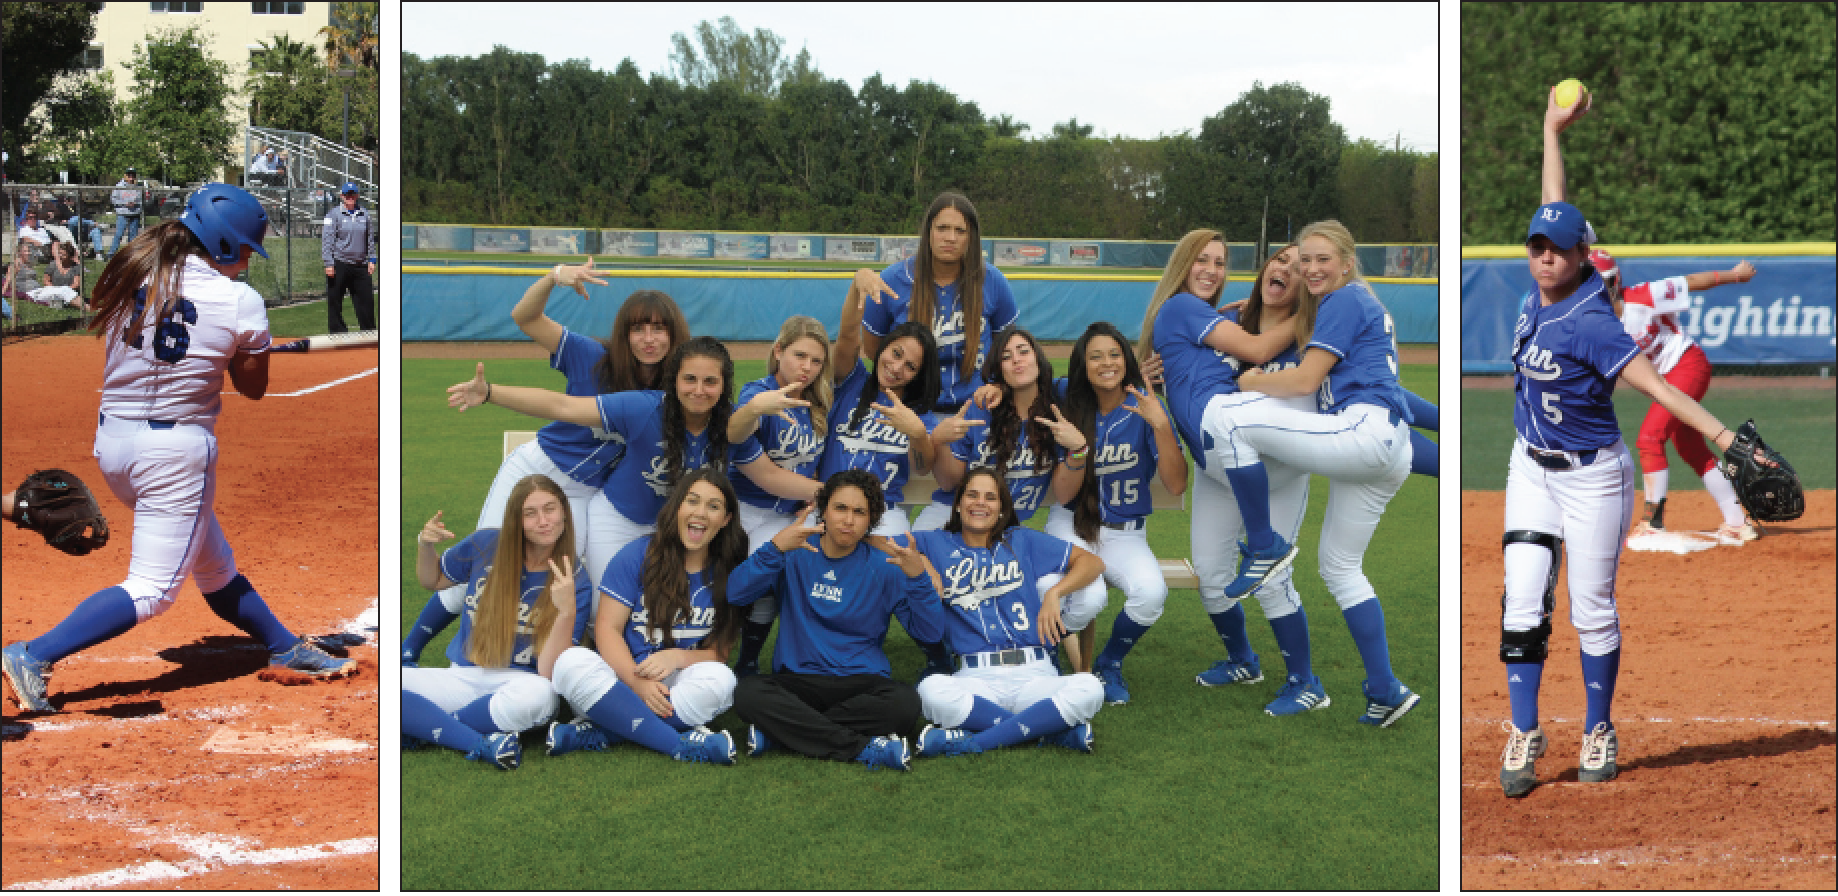 Above: Lynn's Women's Softball team is closer than ever - both in friendship and getting to a winning record this season. LU Photos.